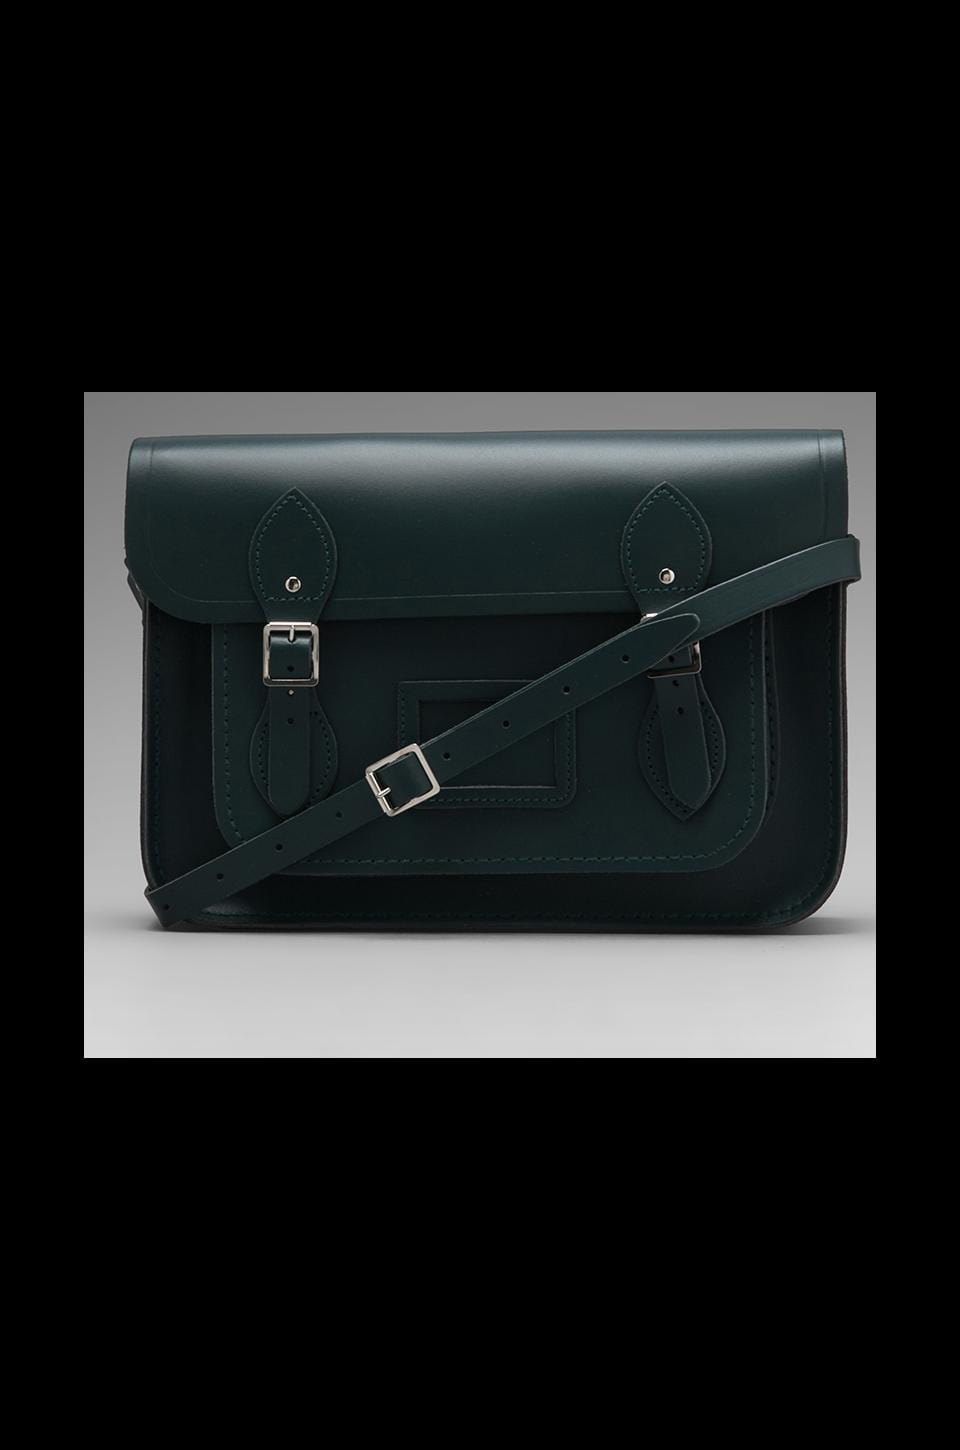 The Cambridge Satchel Company Core Collection 13'' Satchel in Dark Green